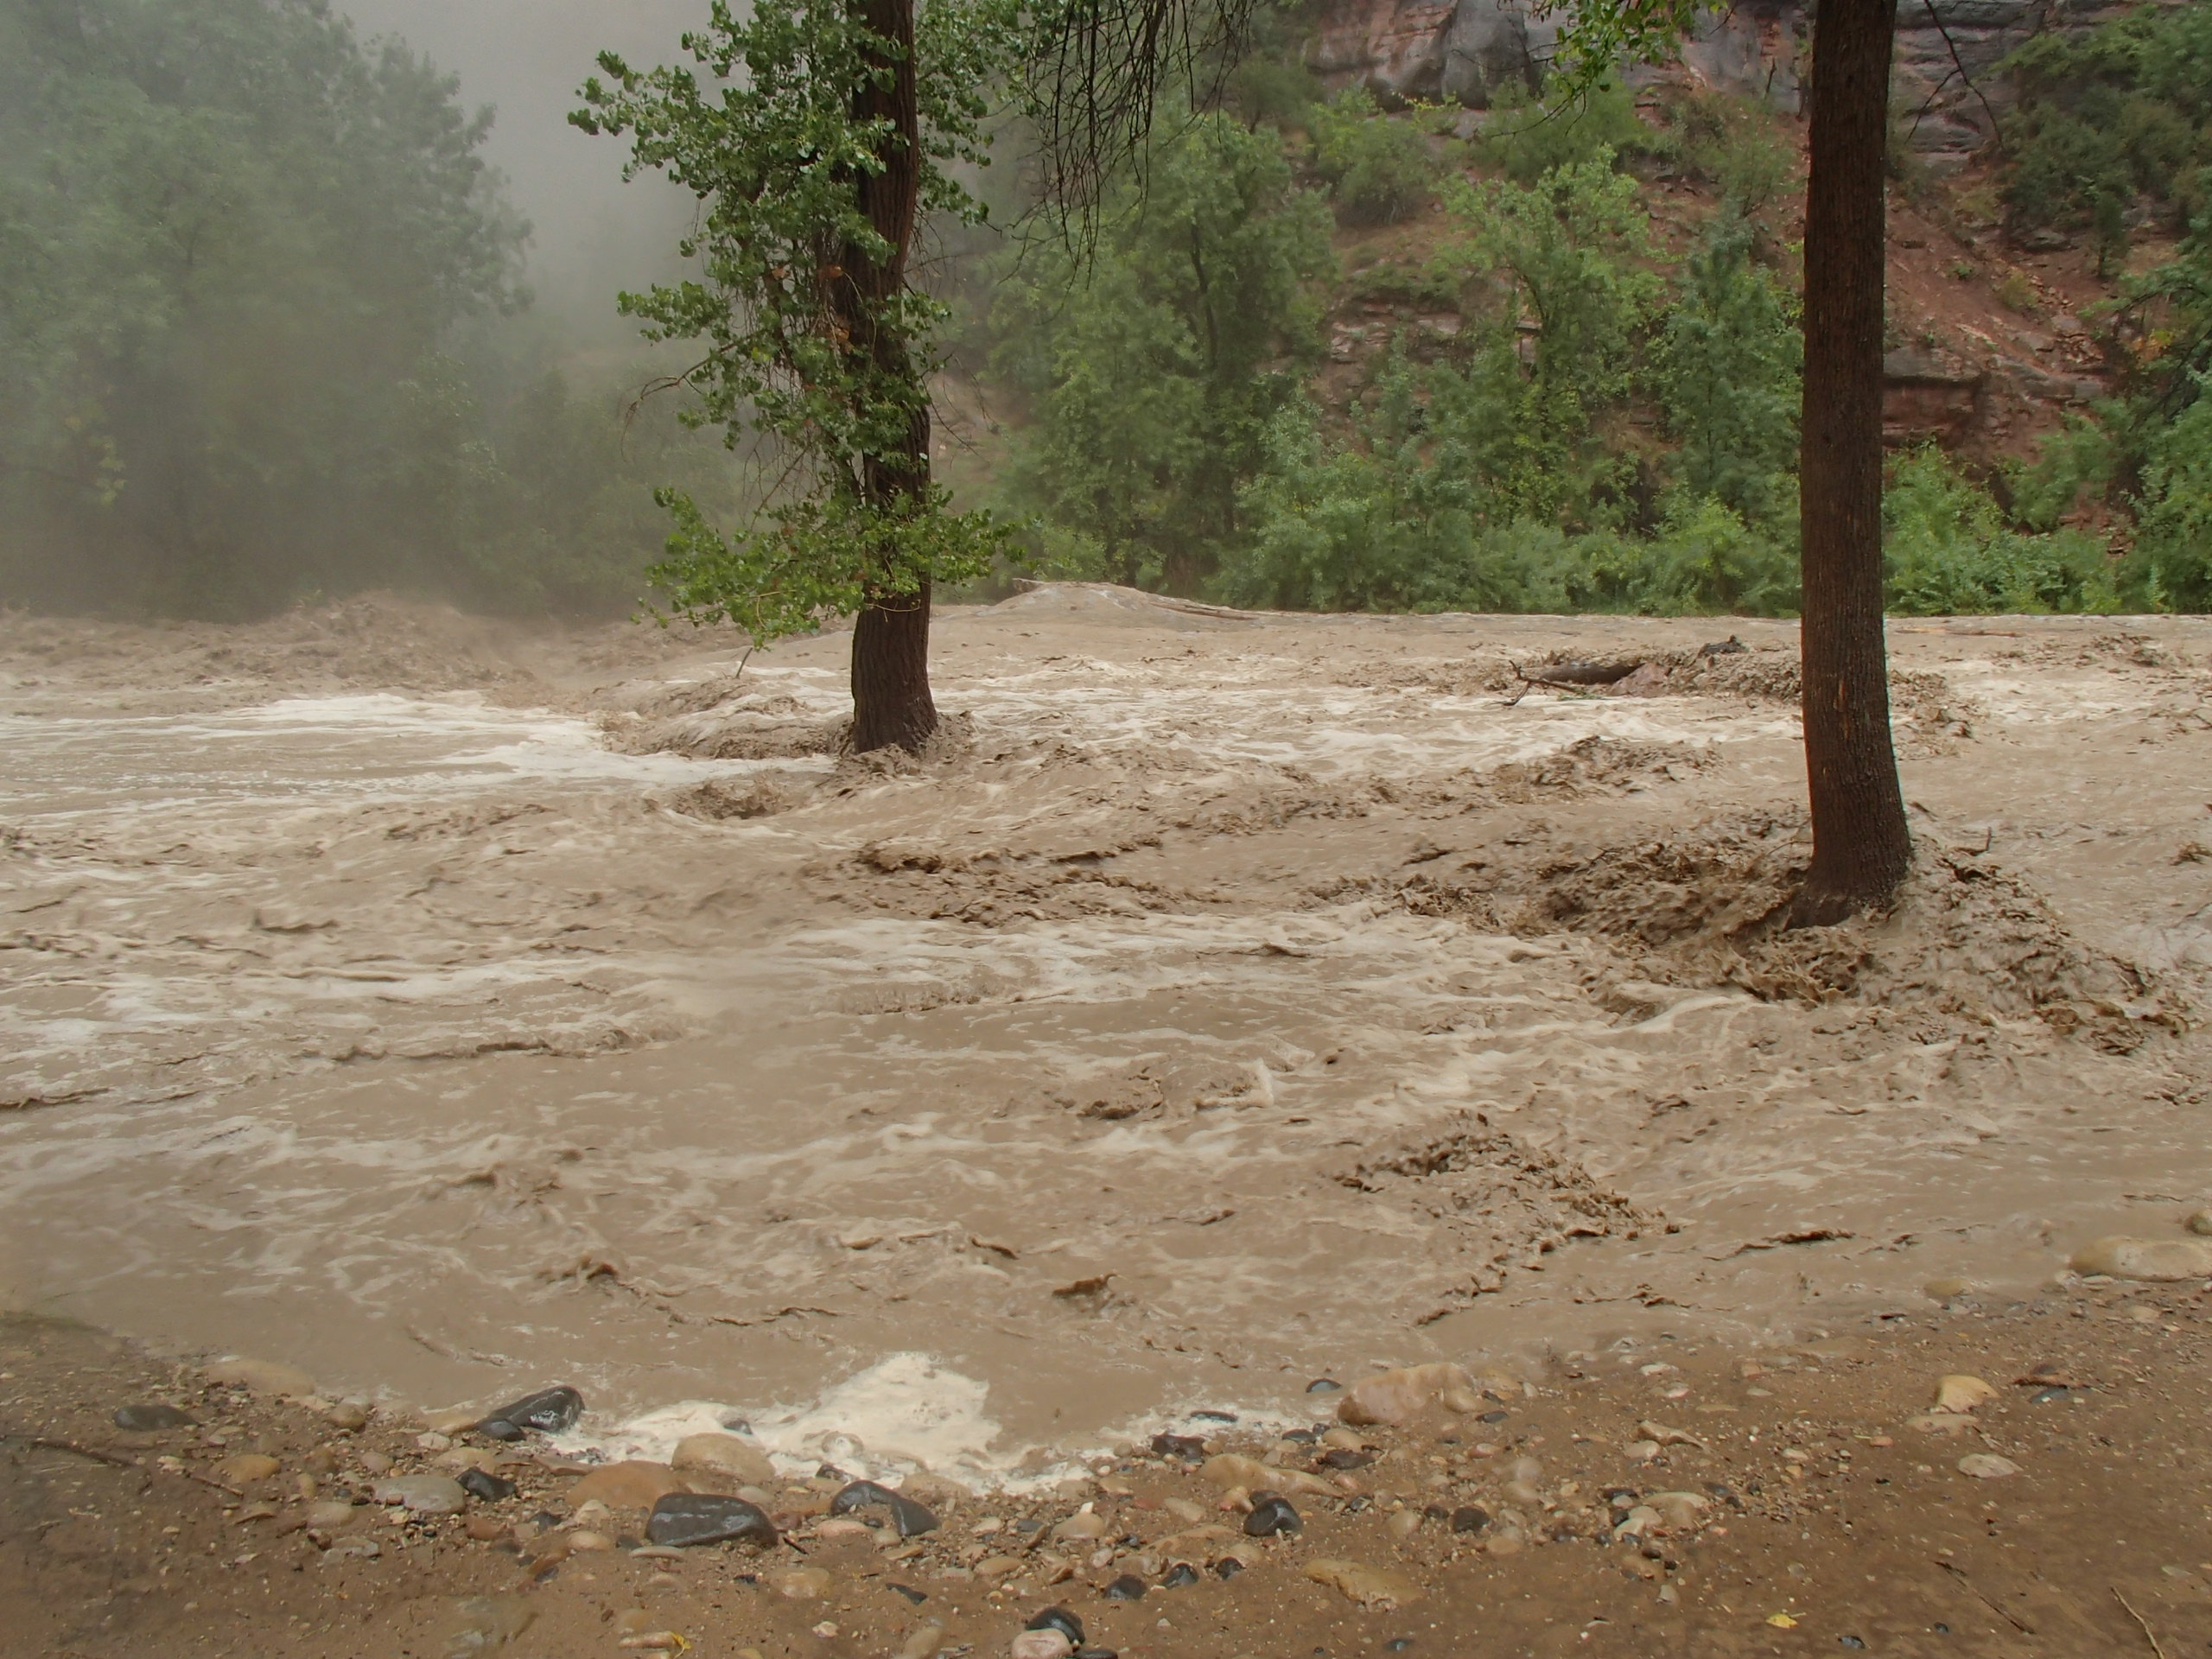 Flash flood in Zion National Park